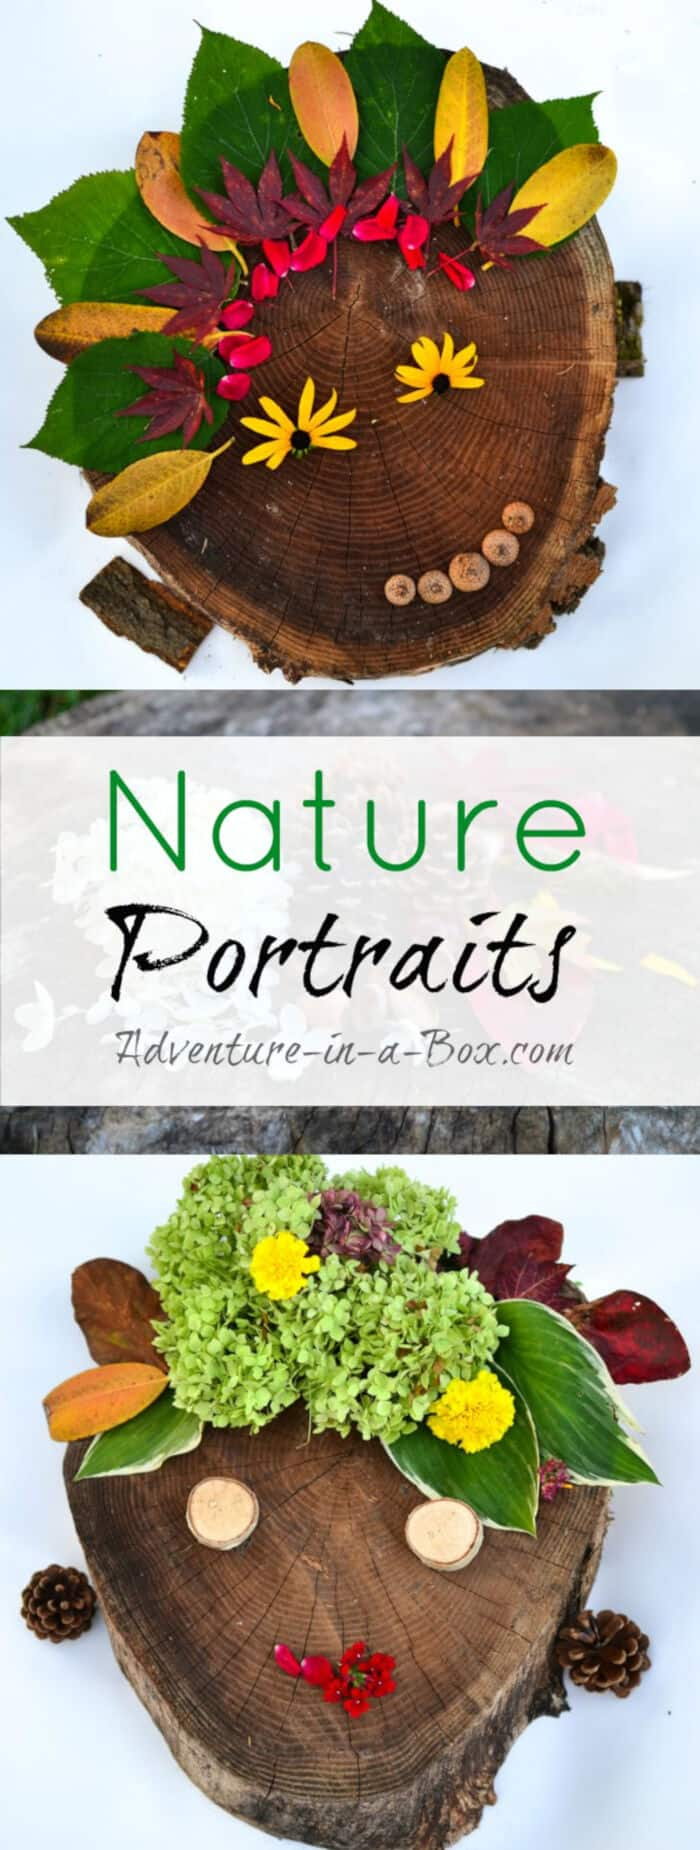 Nature-Portraits-by-Adventure-in-a-Box